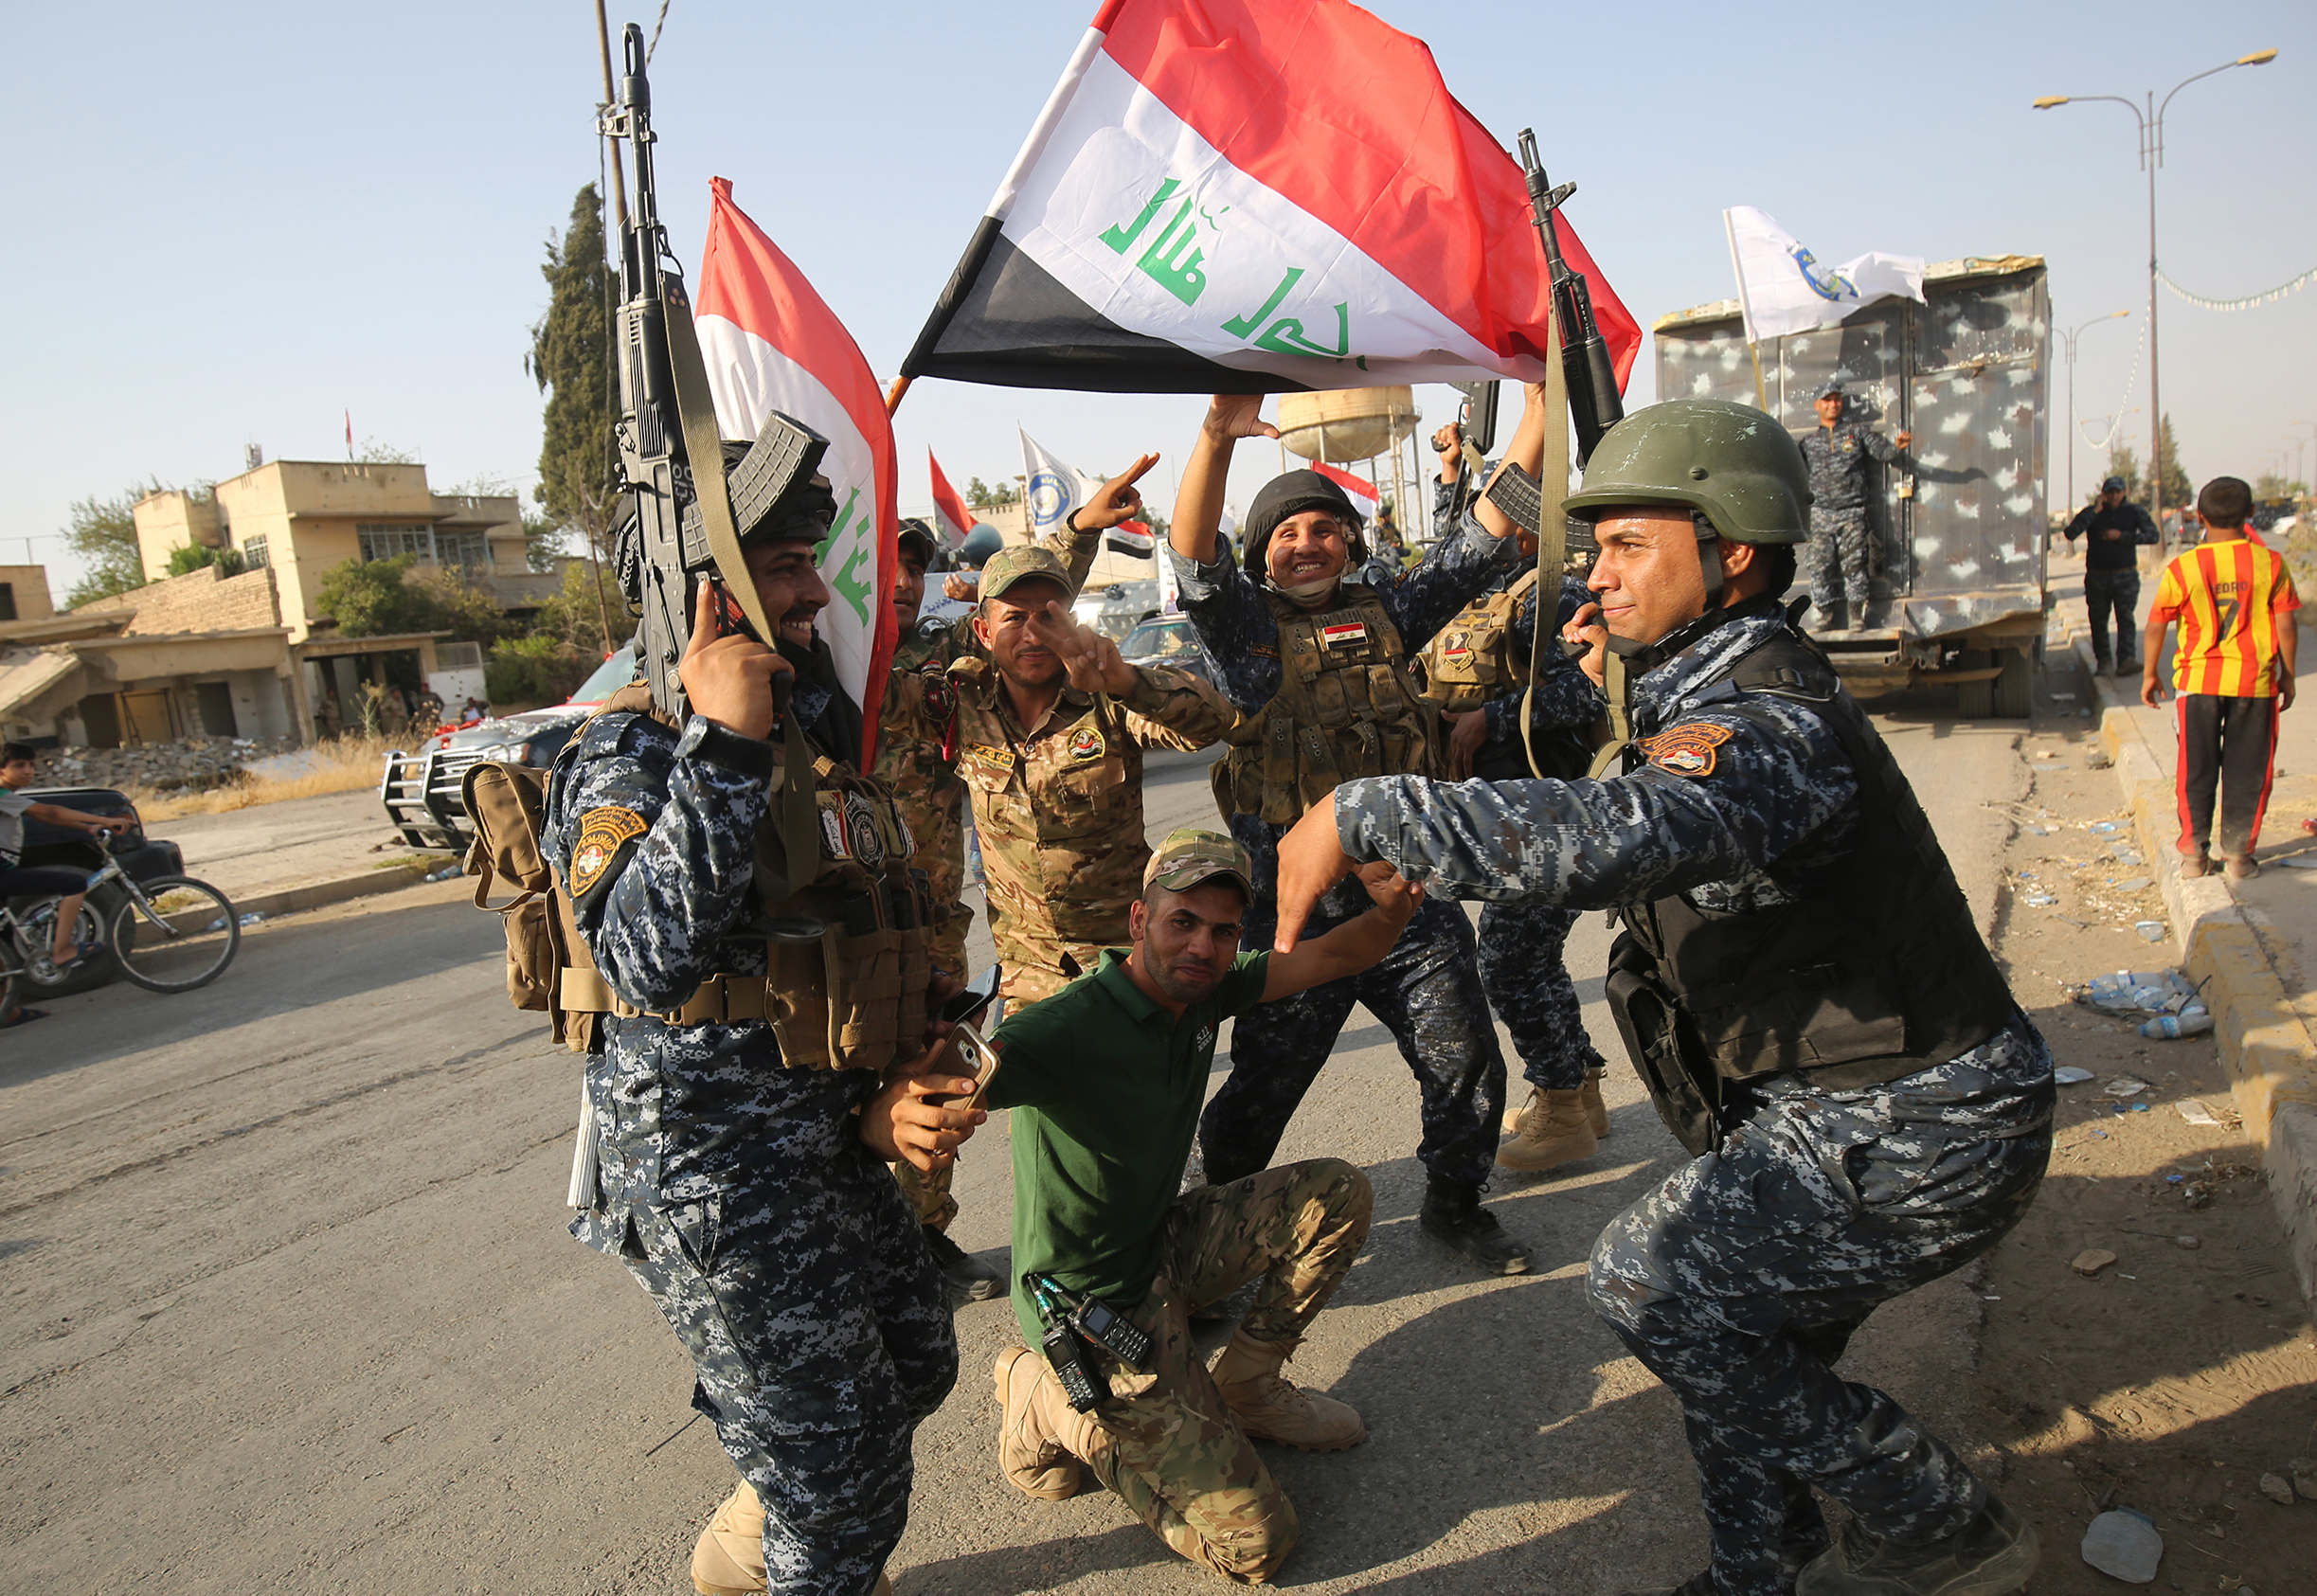 Iraqi Prime Minister in Mosul after 'victory' over ISIS""